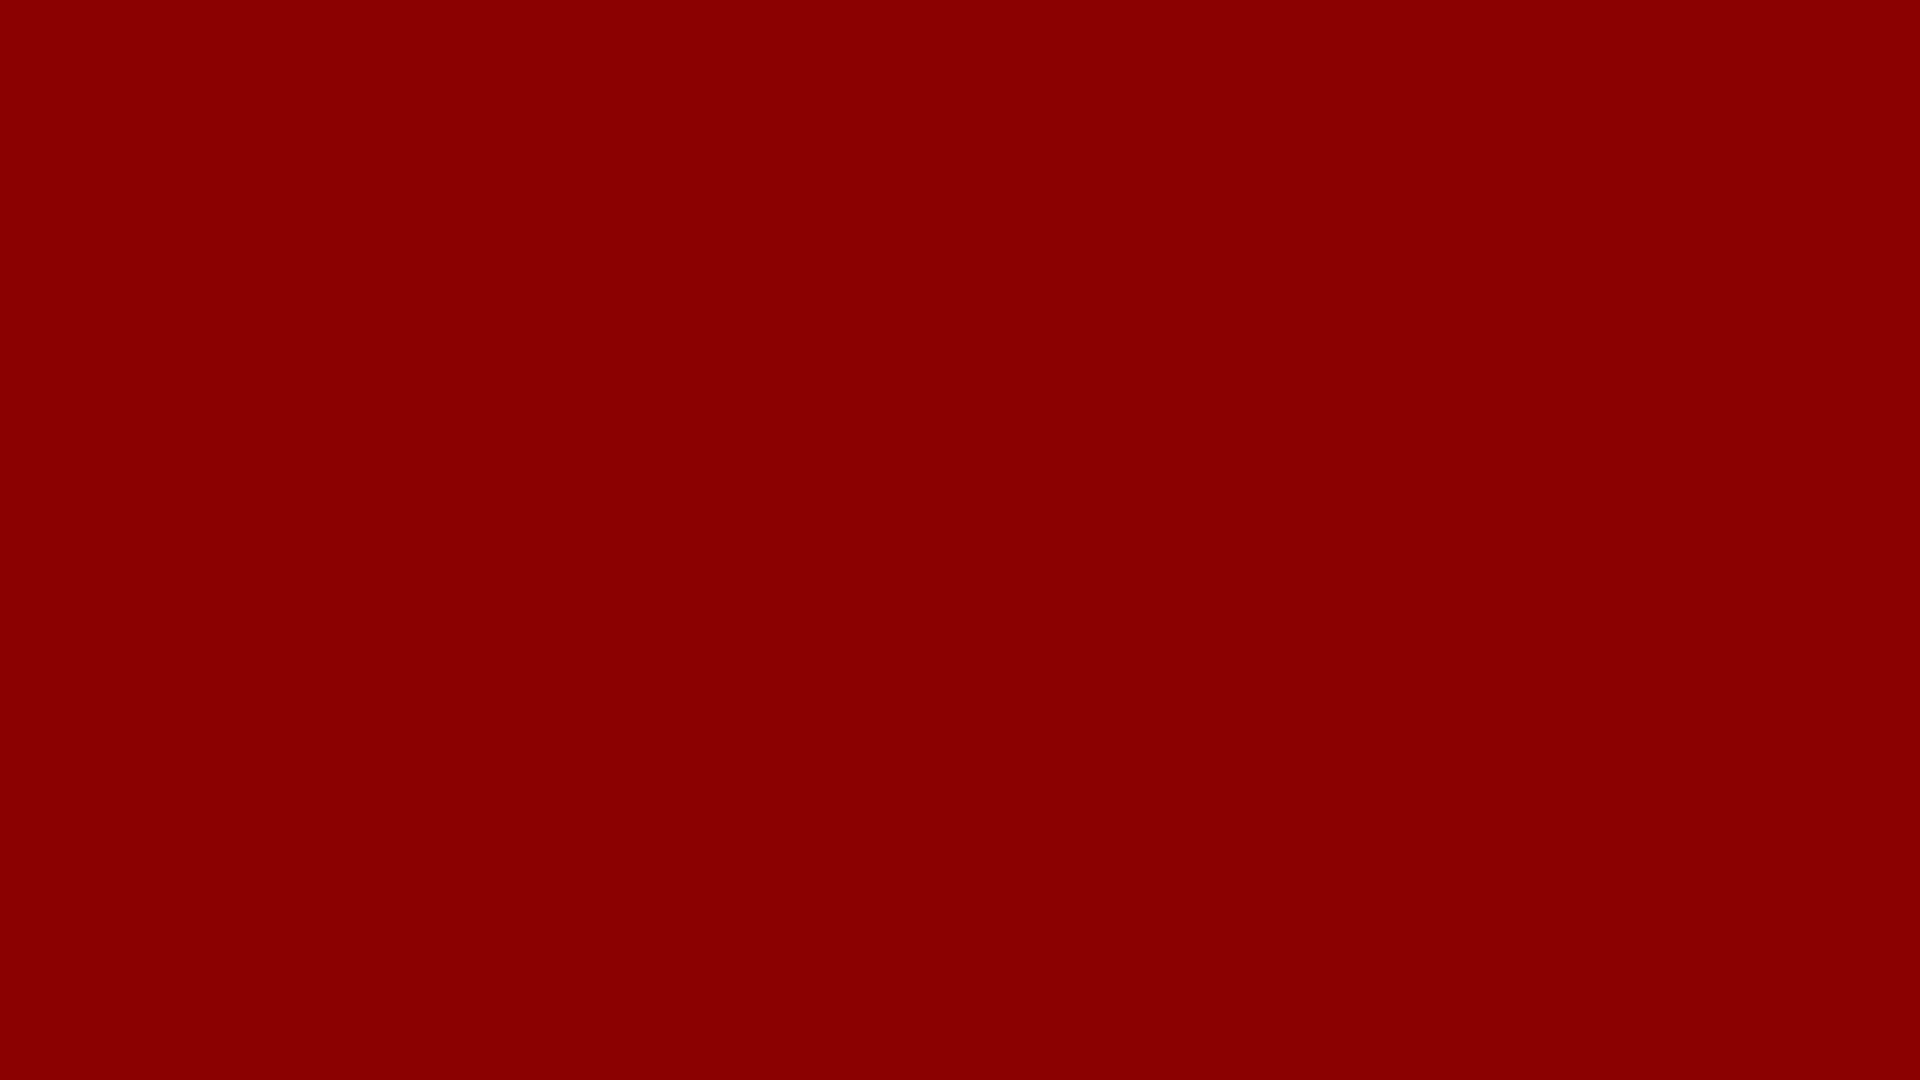 1920x1080 resolution Dark Red solid color background view and 1920x1080